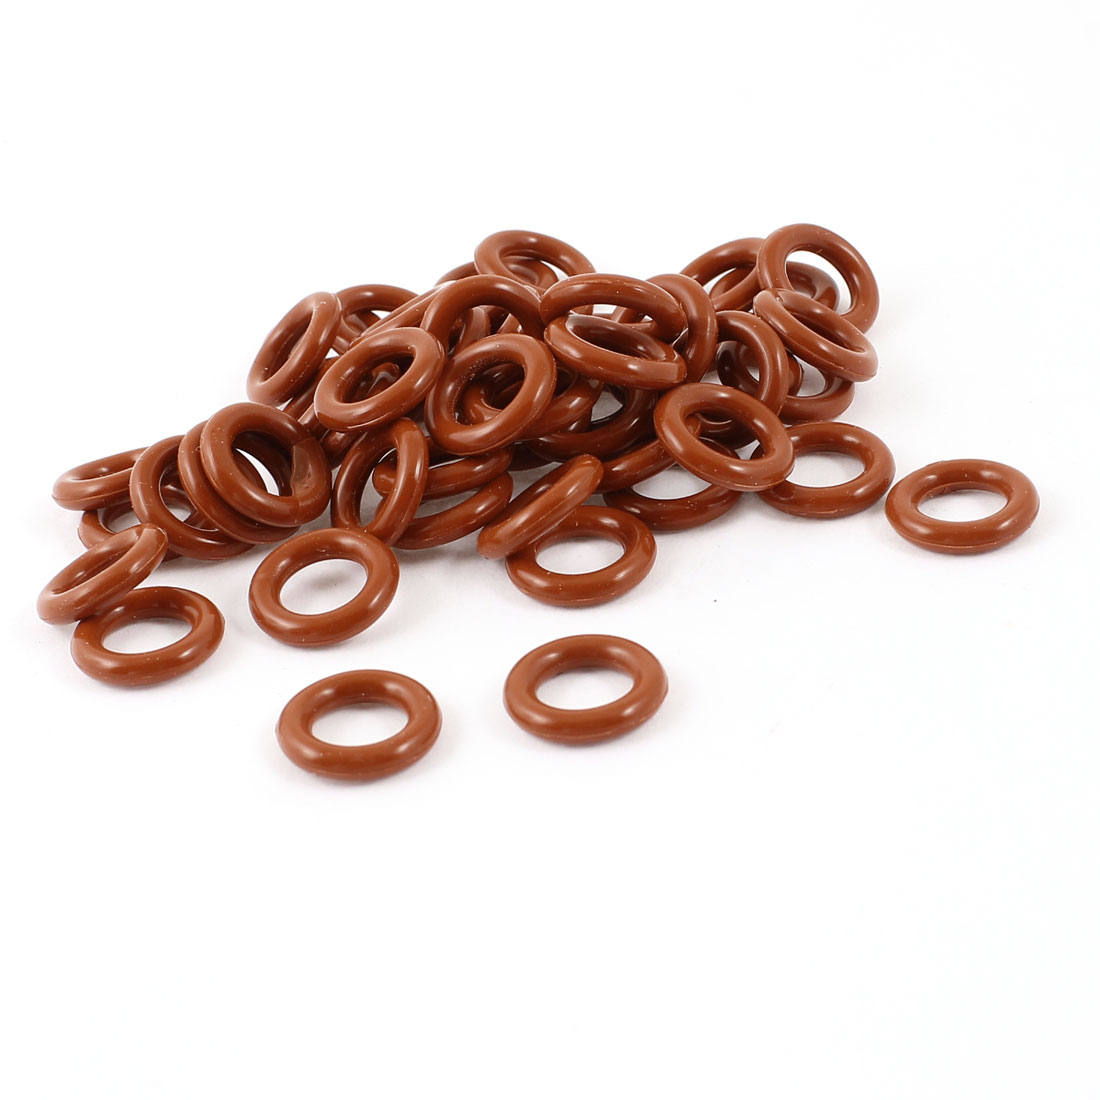 15mm x 9mm x 3mm Brick Red Rubber O Shaped Rings Oil Seal Gasket Washer 50 Pcs